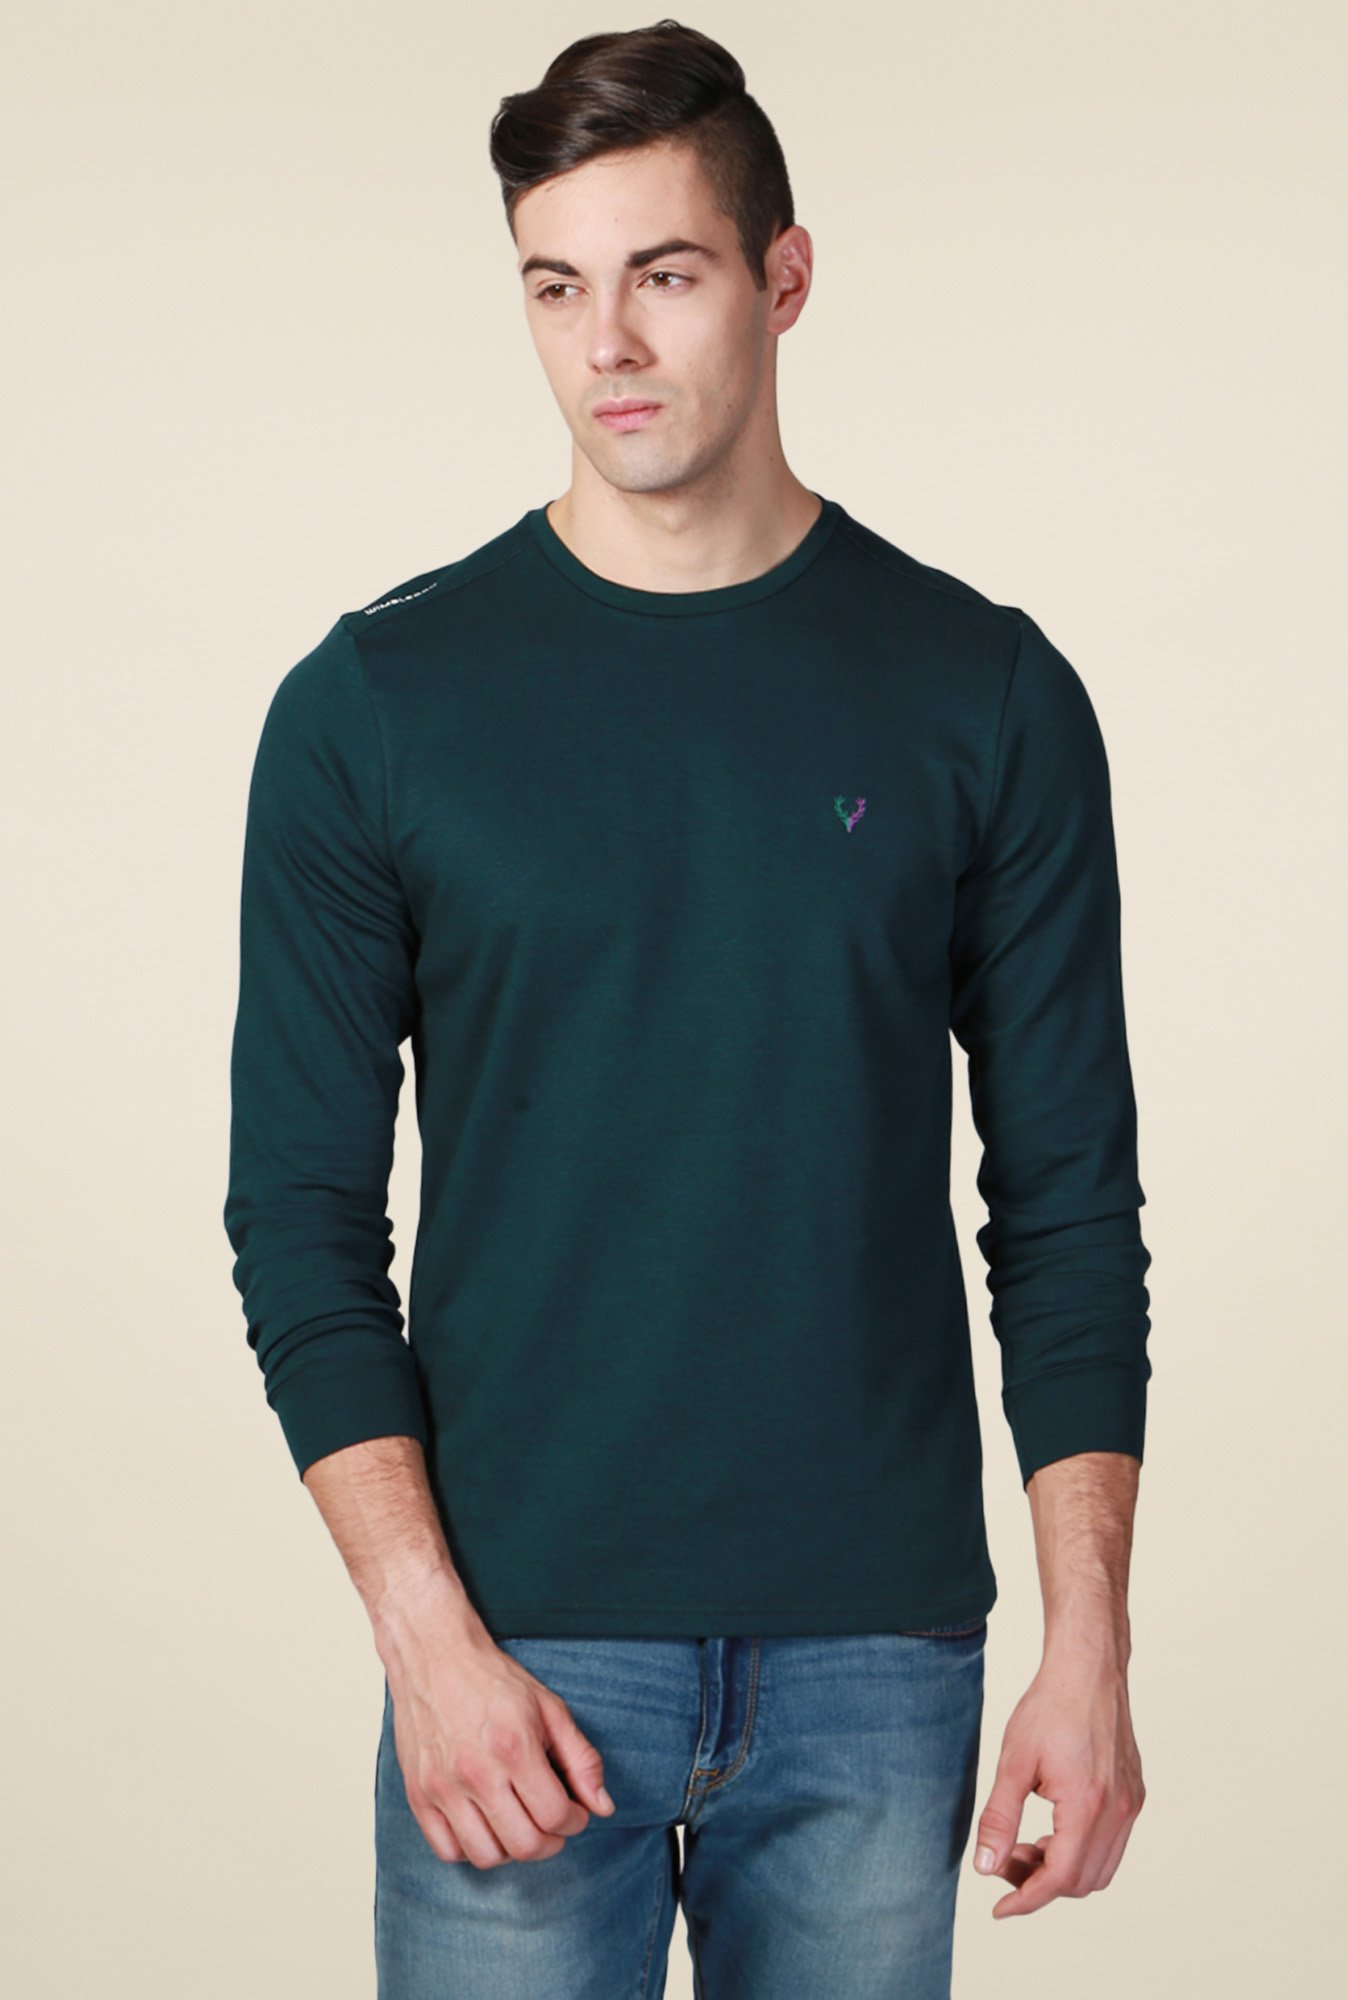 Allen Solly Dark Green Full Sleeves T-Shirt